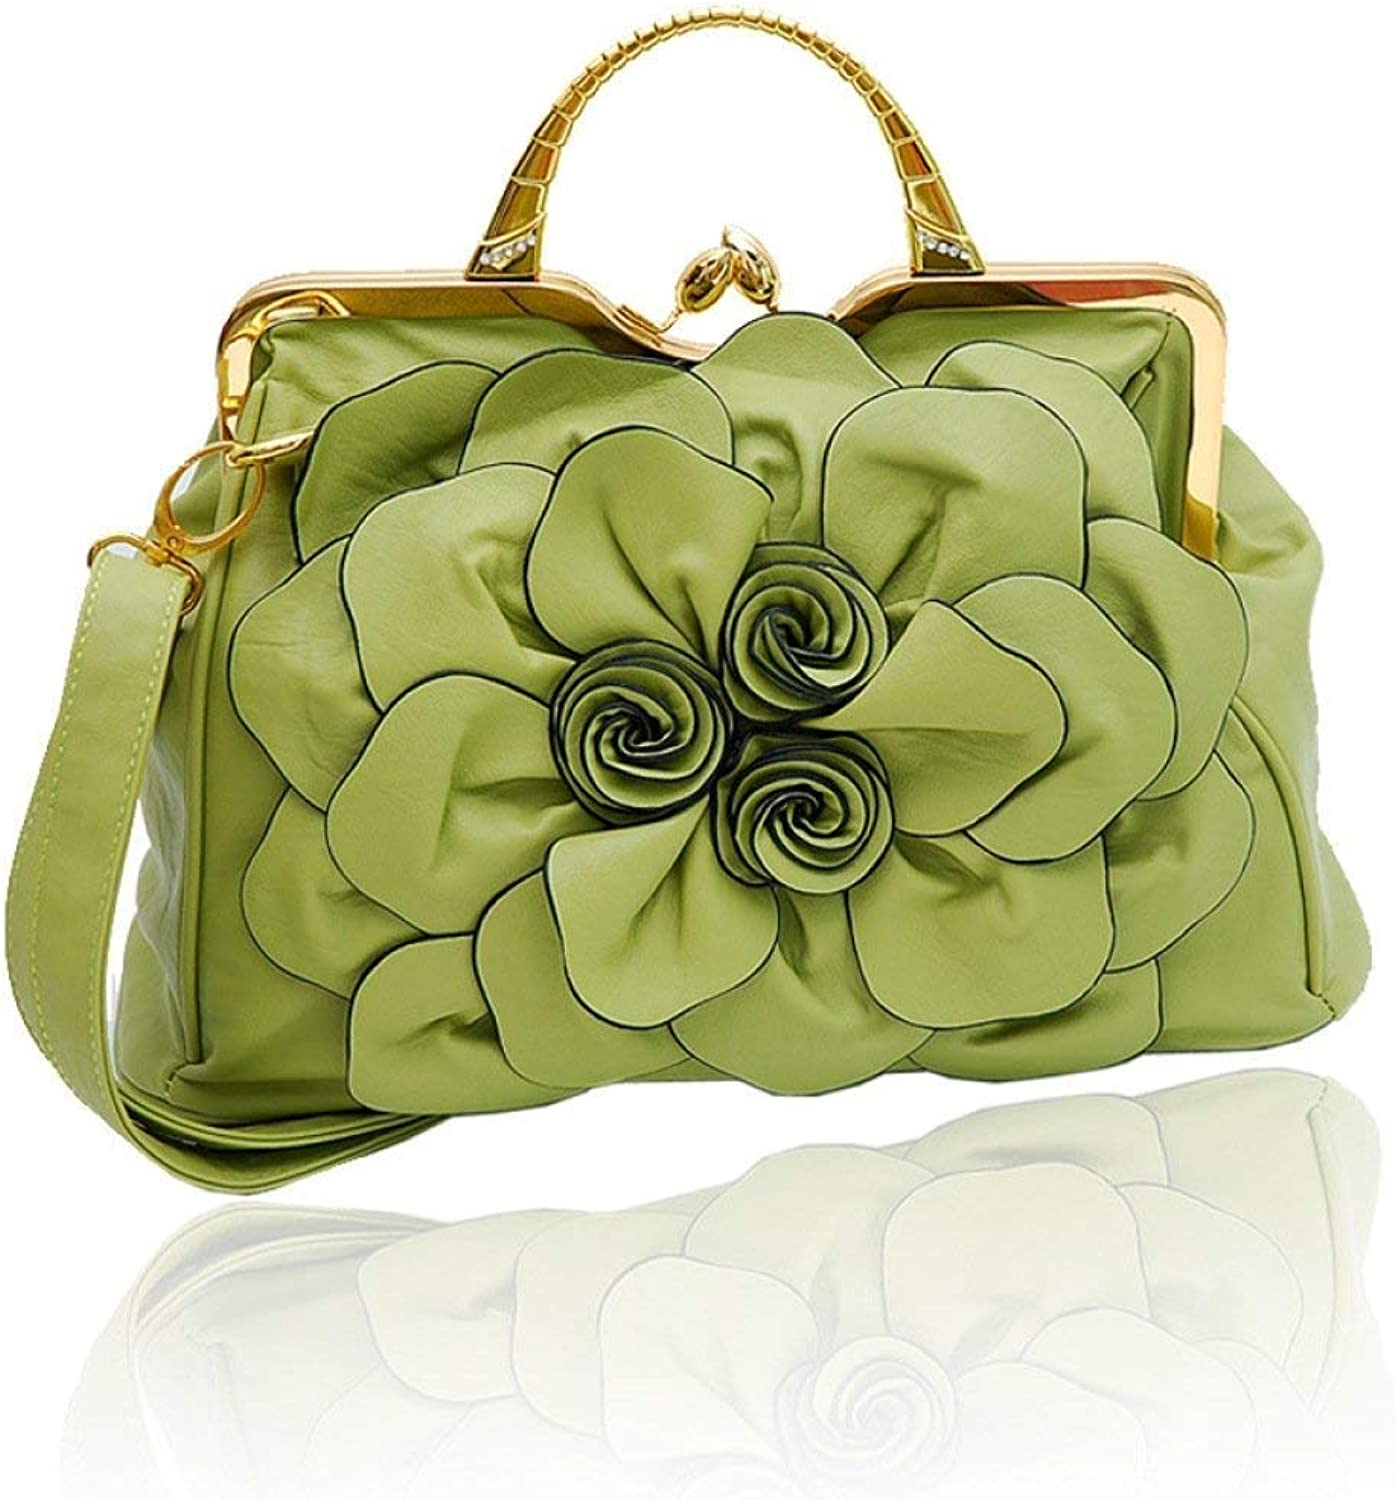 BeTTi 2019 Spring New Women's Bag with DiamondEncrusted pink Big Flower Bag Korean Version Fashion 100 Hand Bill of Lading Shoulder Crossbody Bag (color   Grass Green, Size   Size)